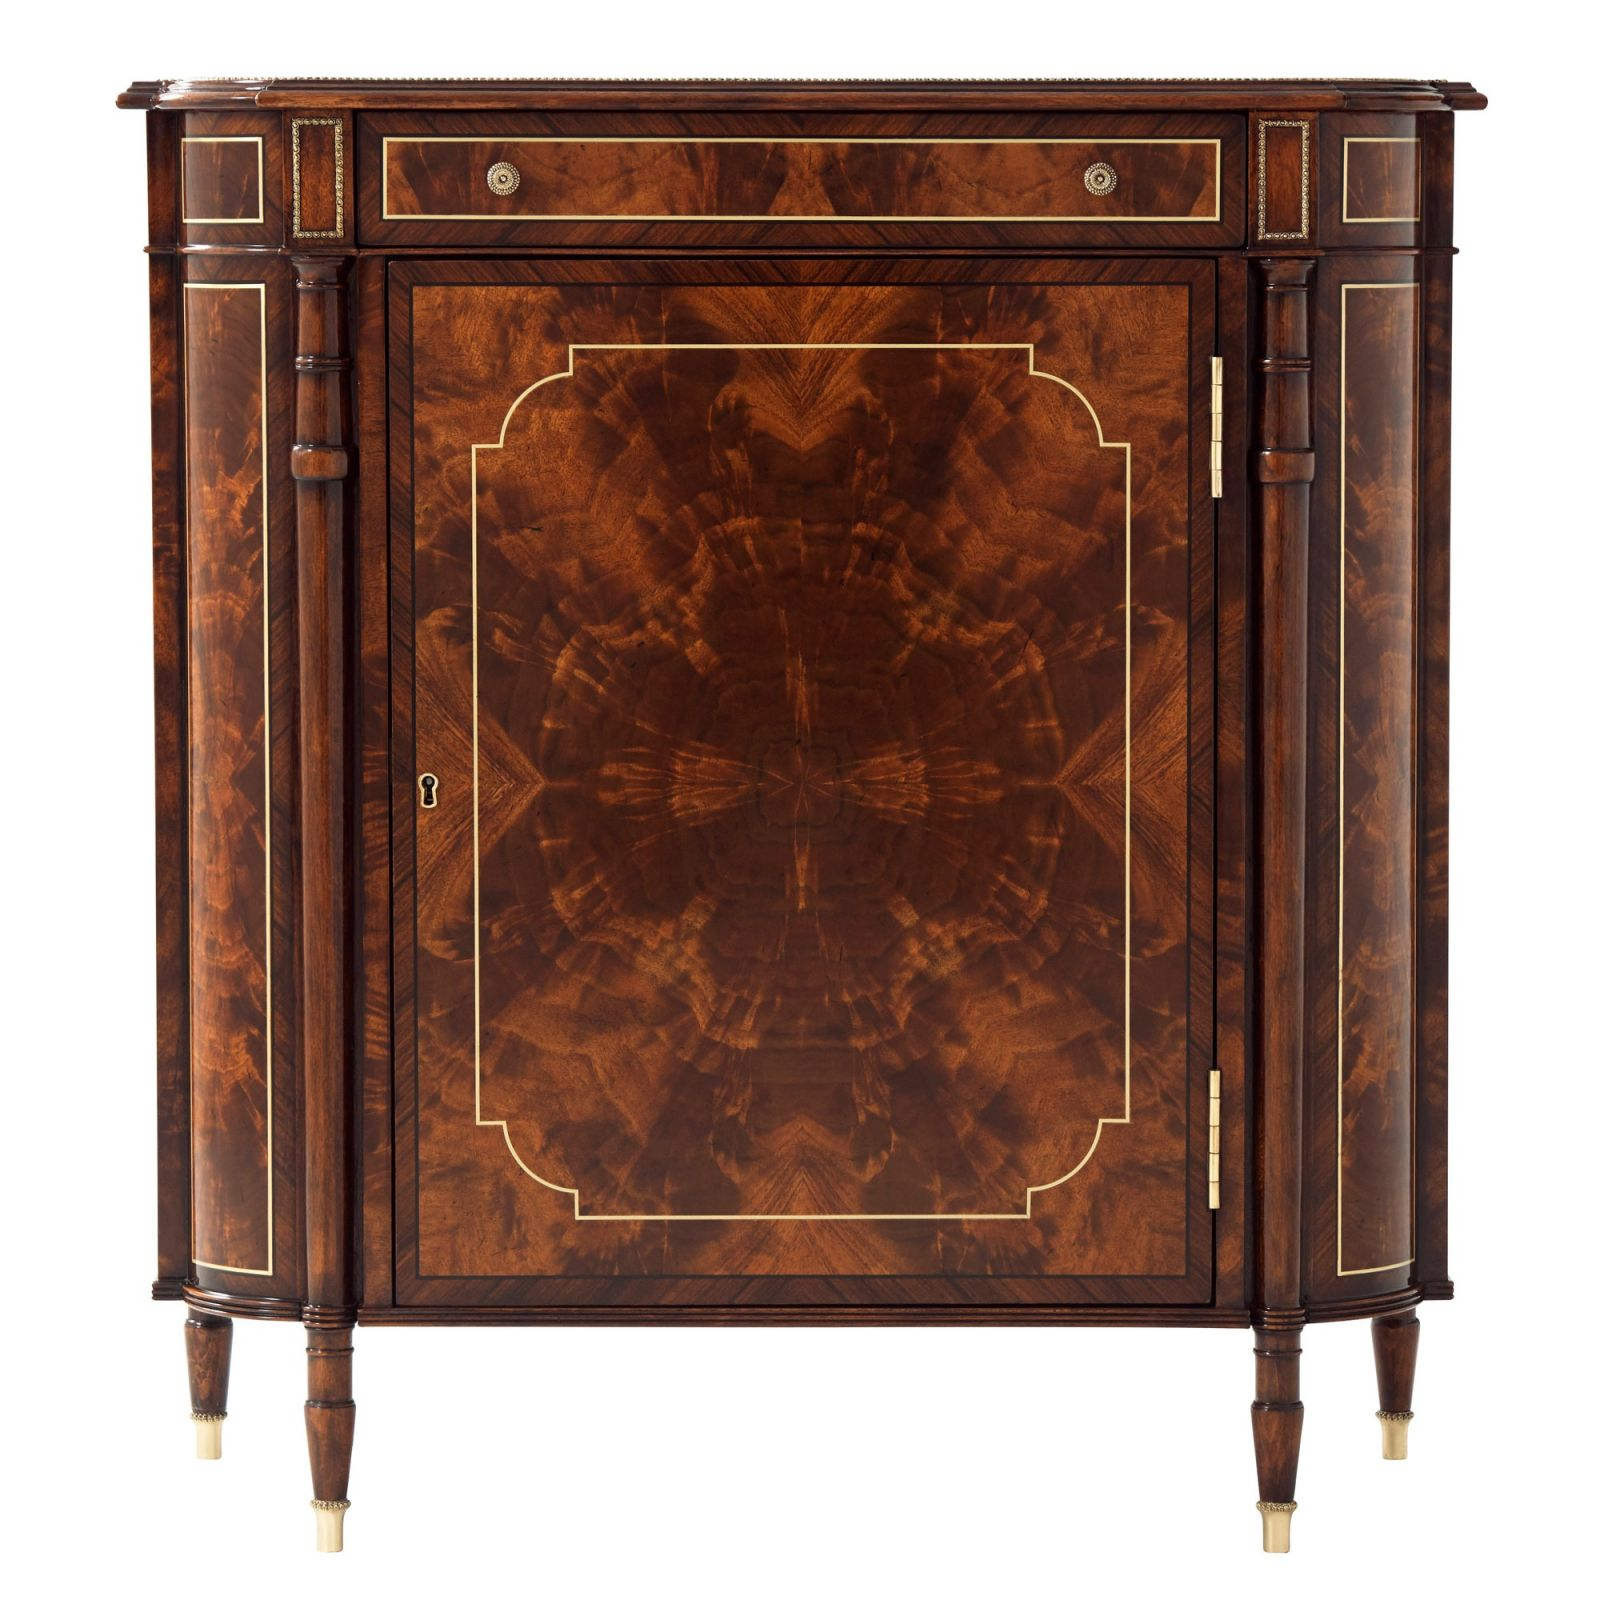 A flame mahogany side cabinet